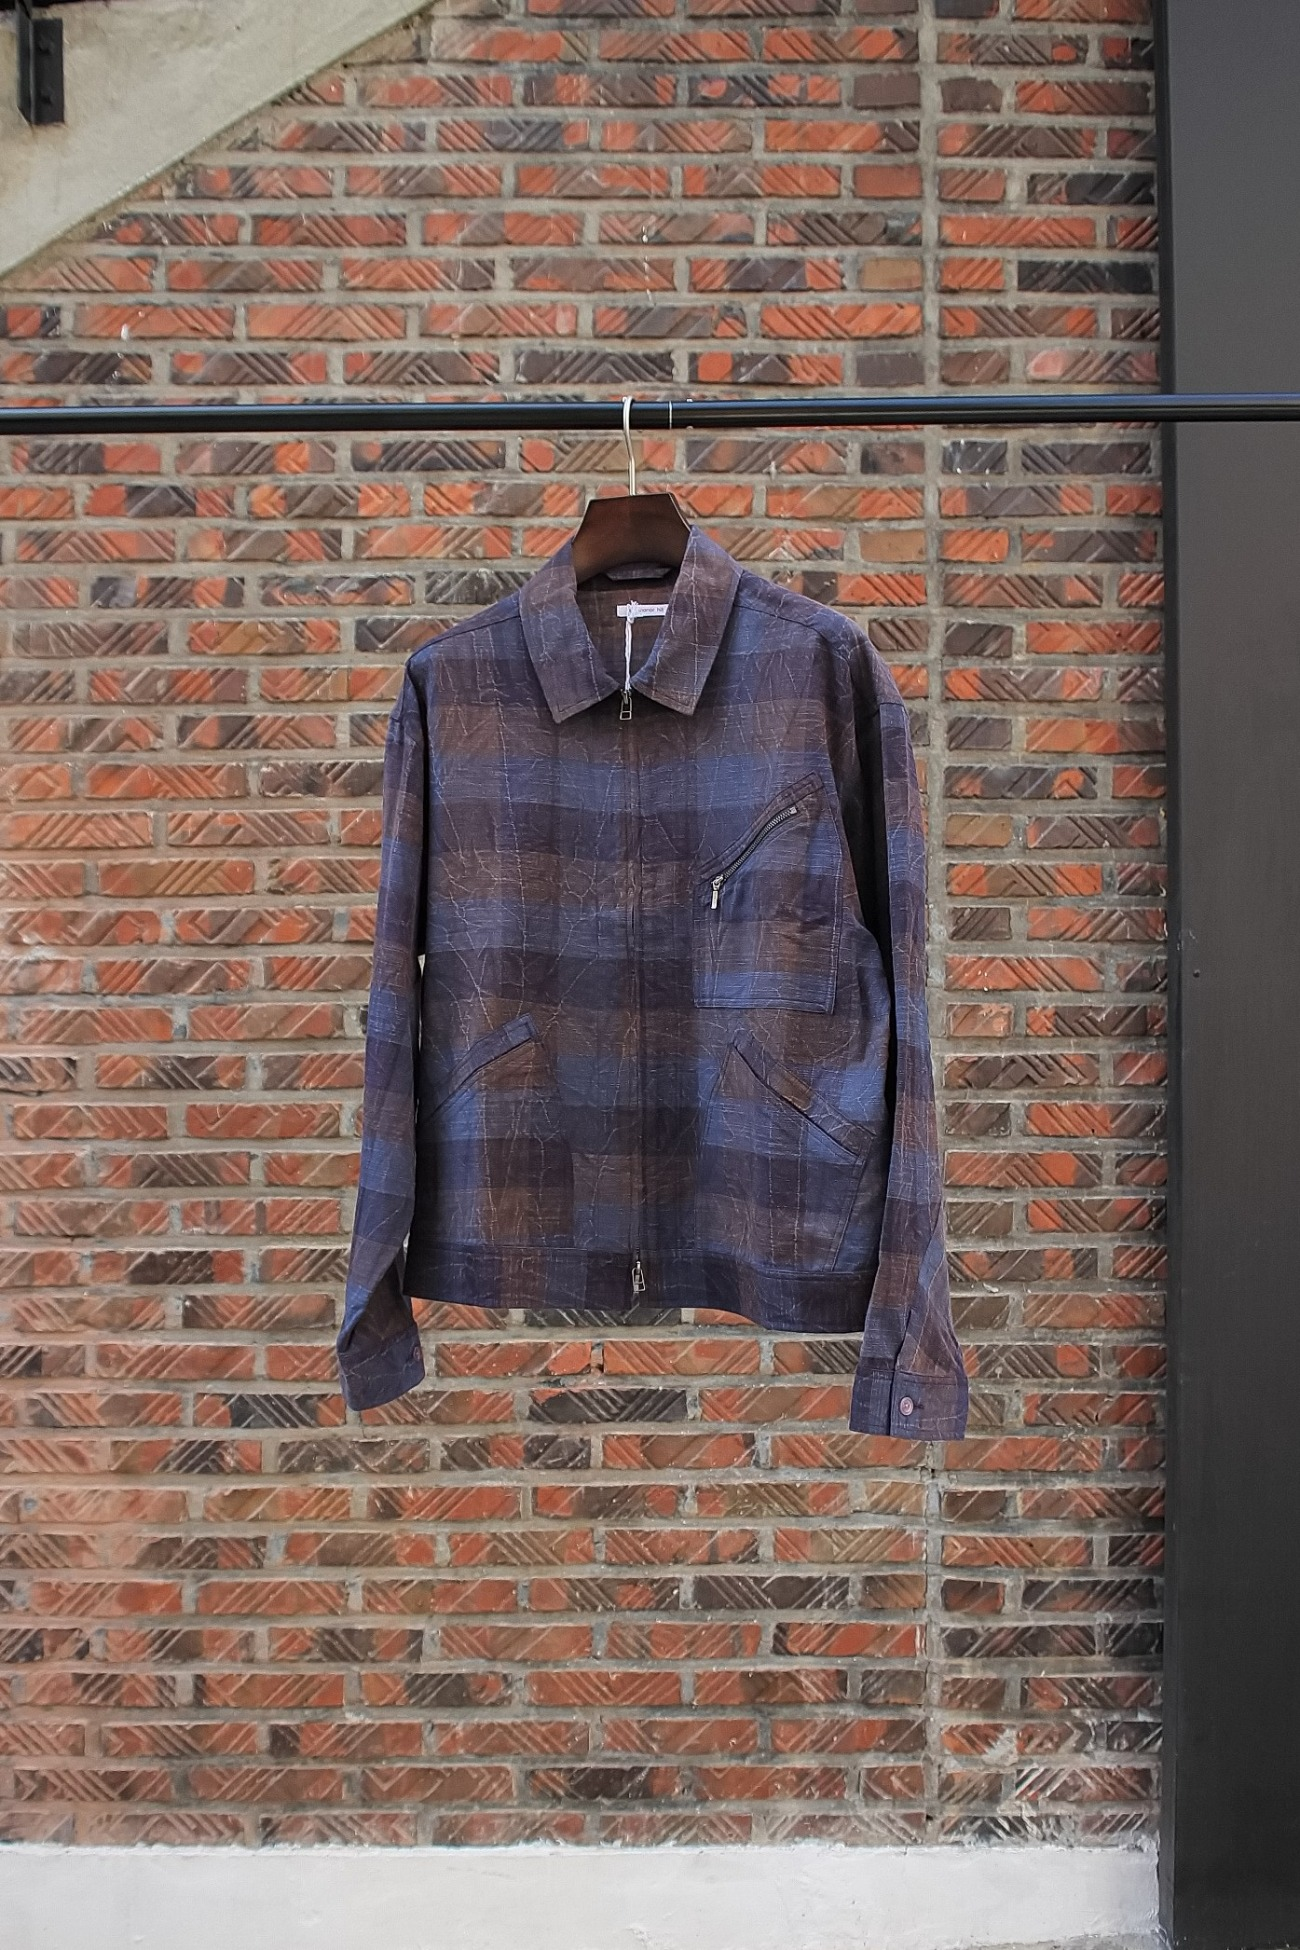 [s.k. manor hill] Buddy Jacket - Blue & Purple Plaid